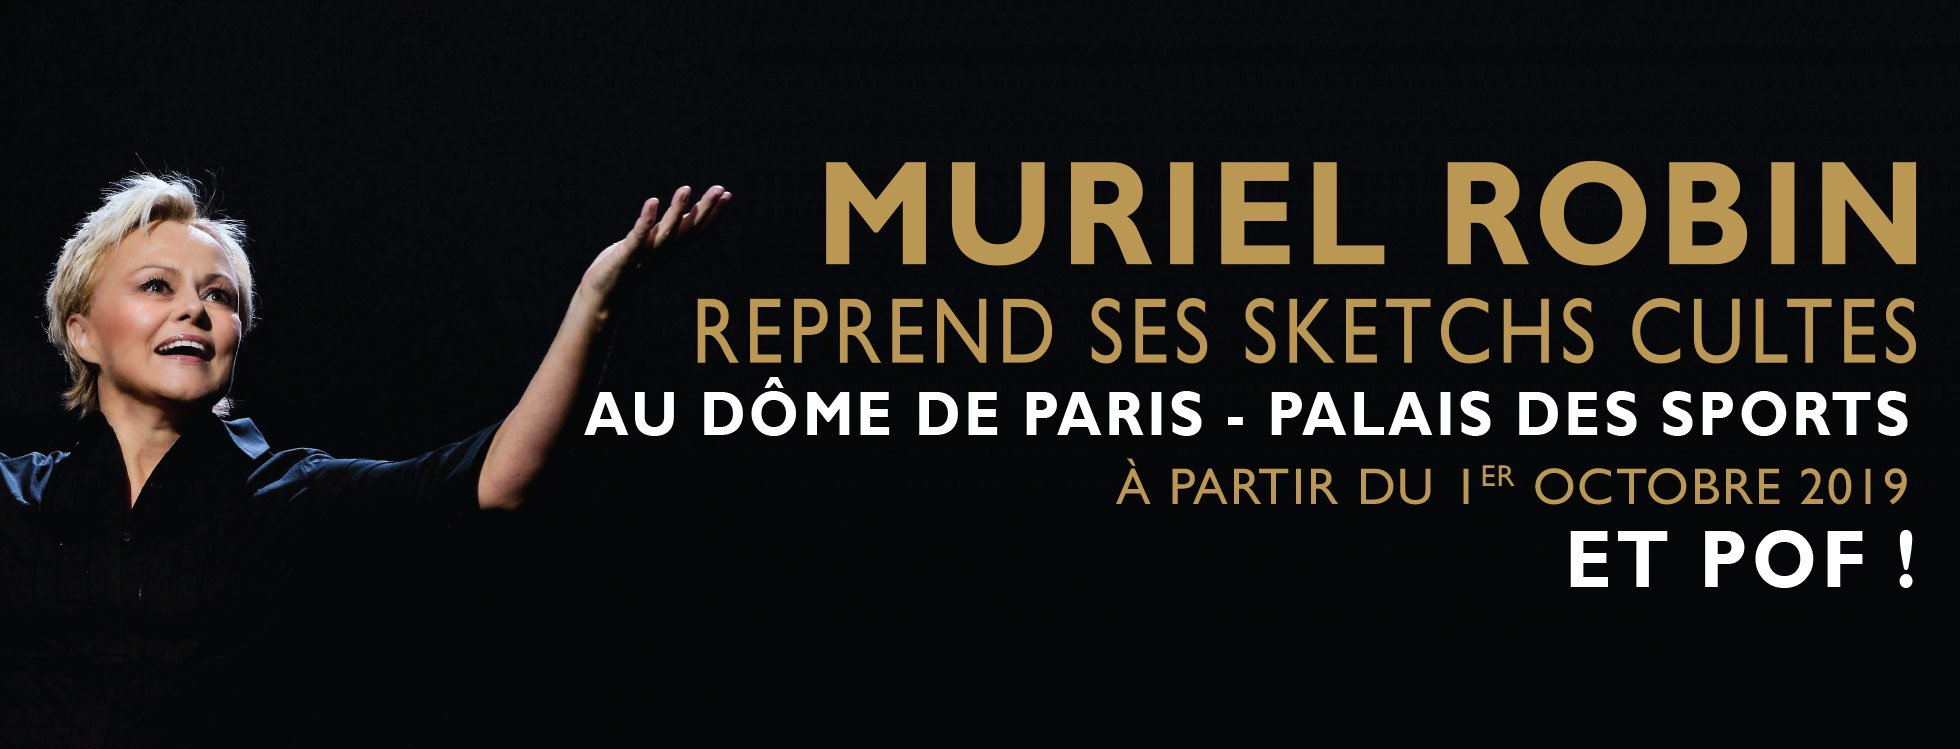 dome de paris : Muriel Robin